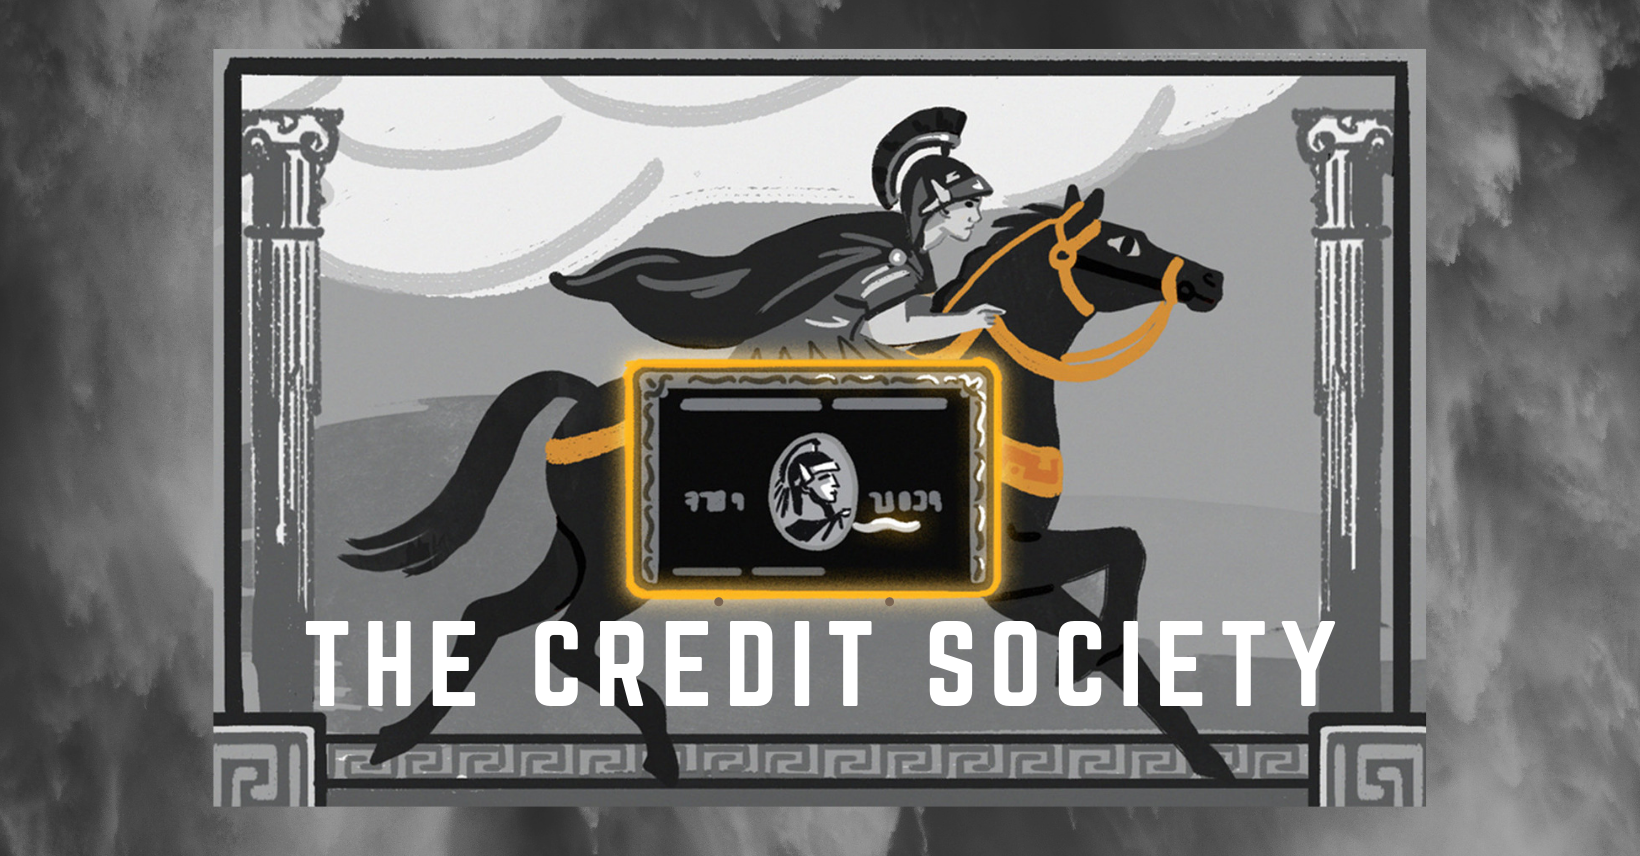 The Credit Society - Join our Credit community on Facebook. 4,000+ Members.